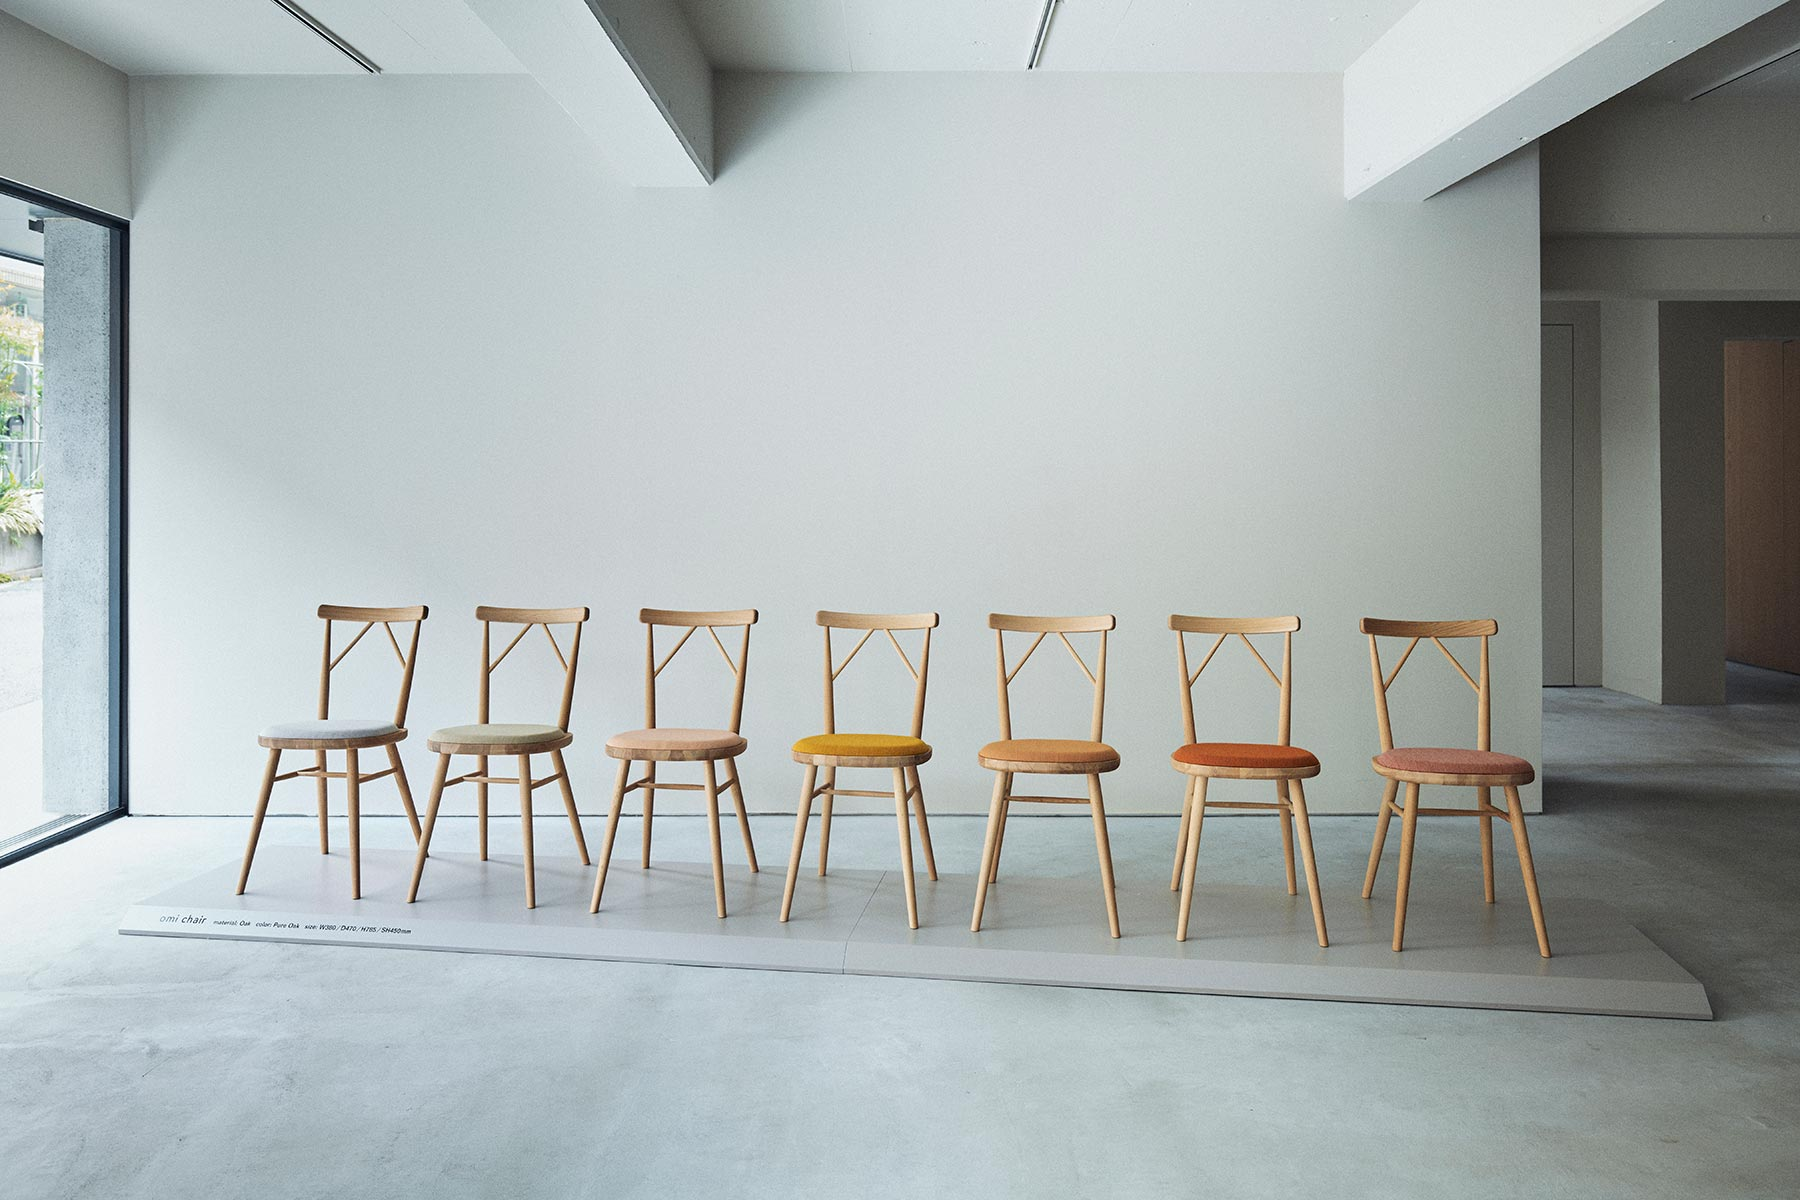 omi chair Exhibition